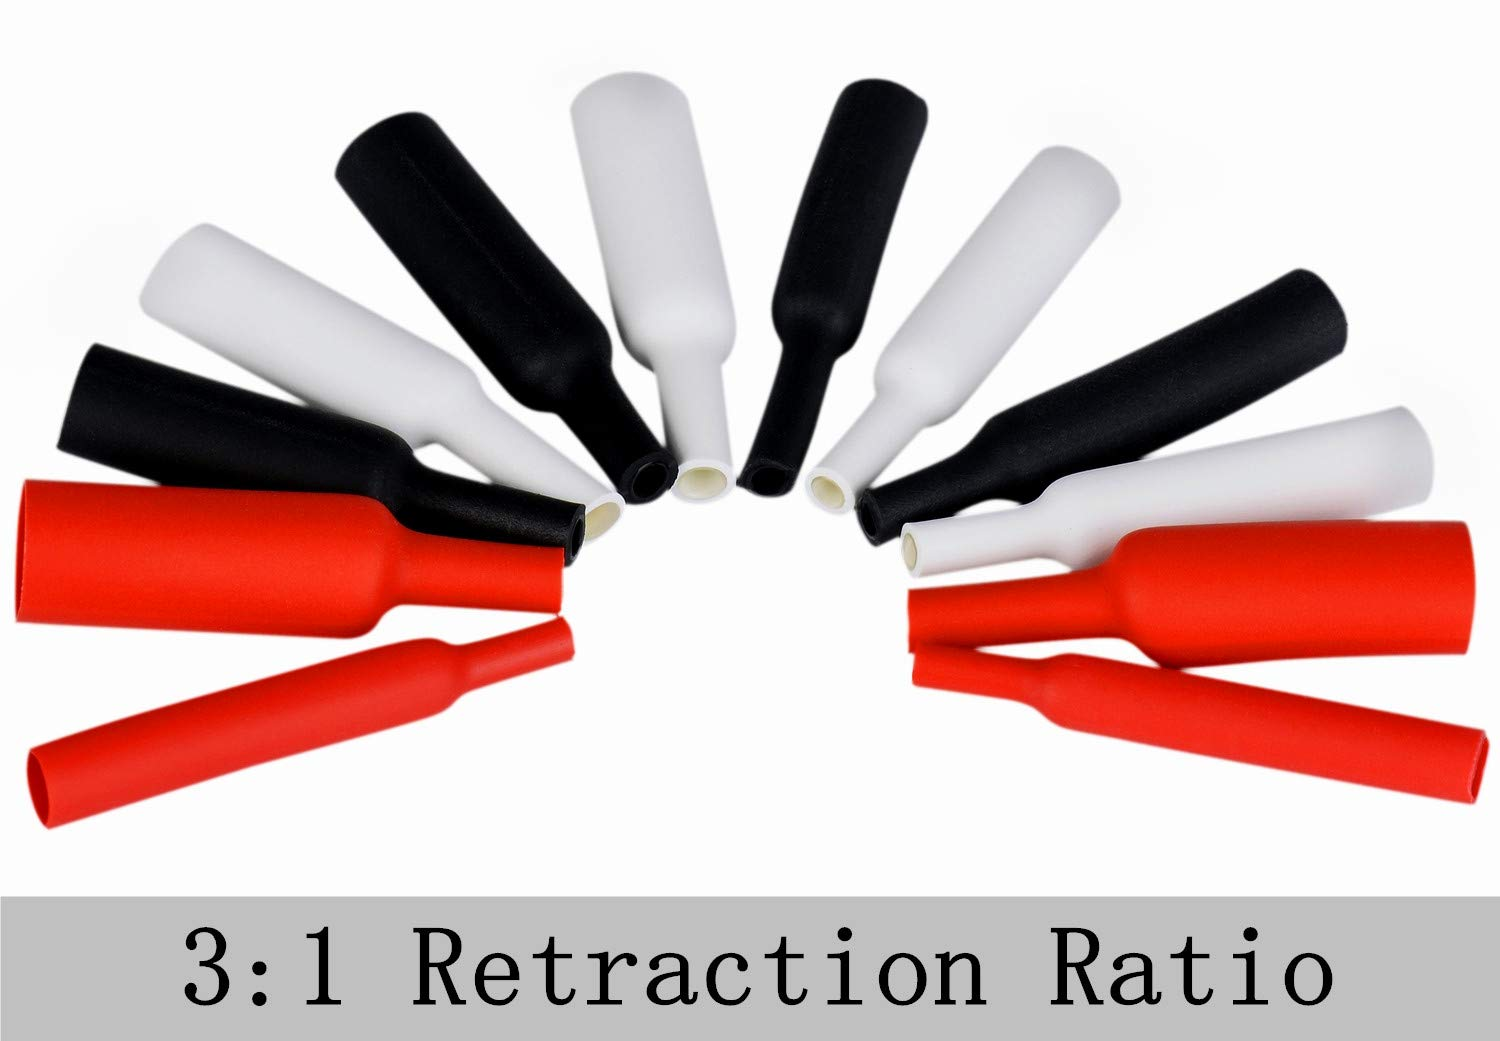 320 pcs 3:1 Shrink Tubing,Heat Shrink Tubing Adhesive Shrink Wrap for Wires Wire Protector Auto and Car Stereo Installs 7 Size 3 Color